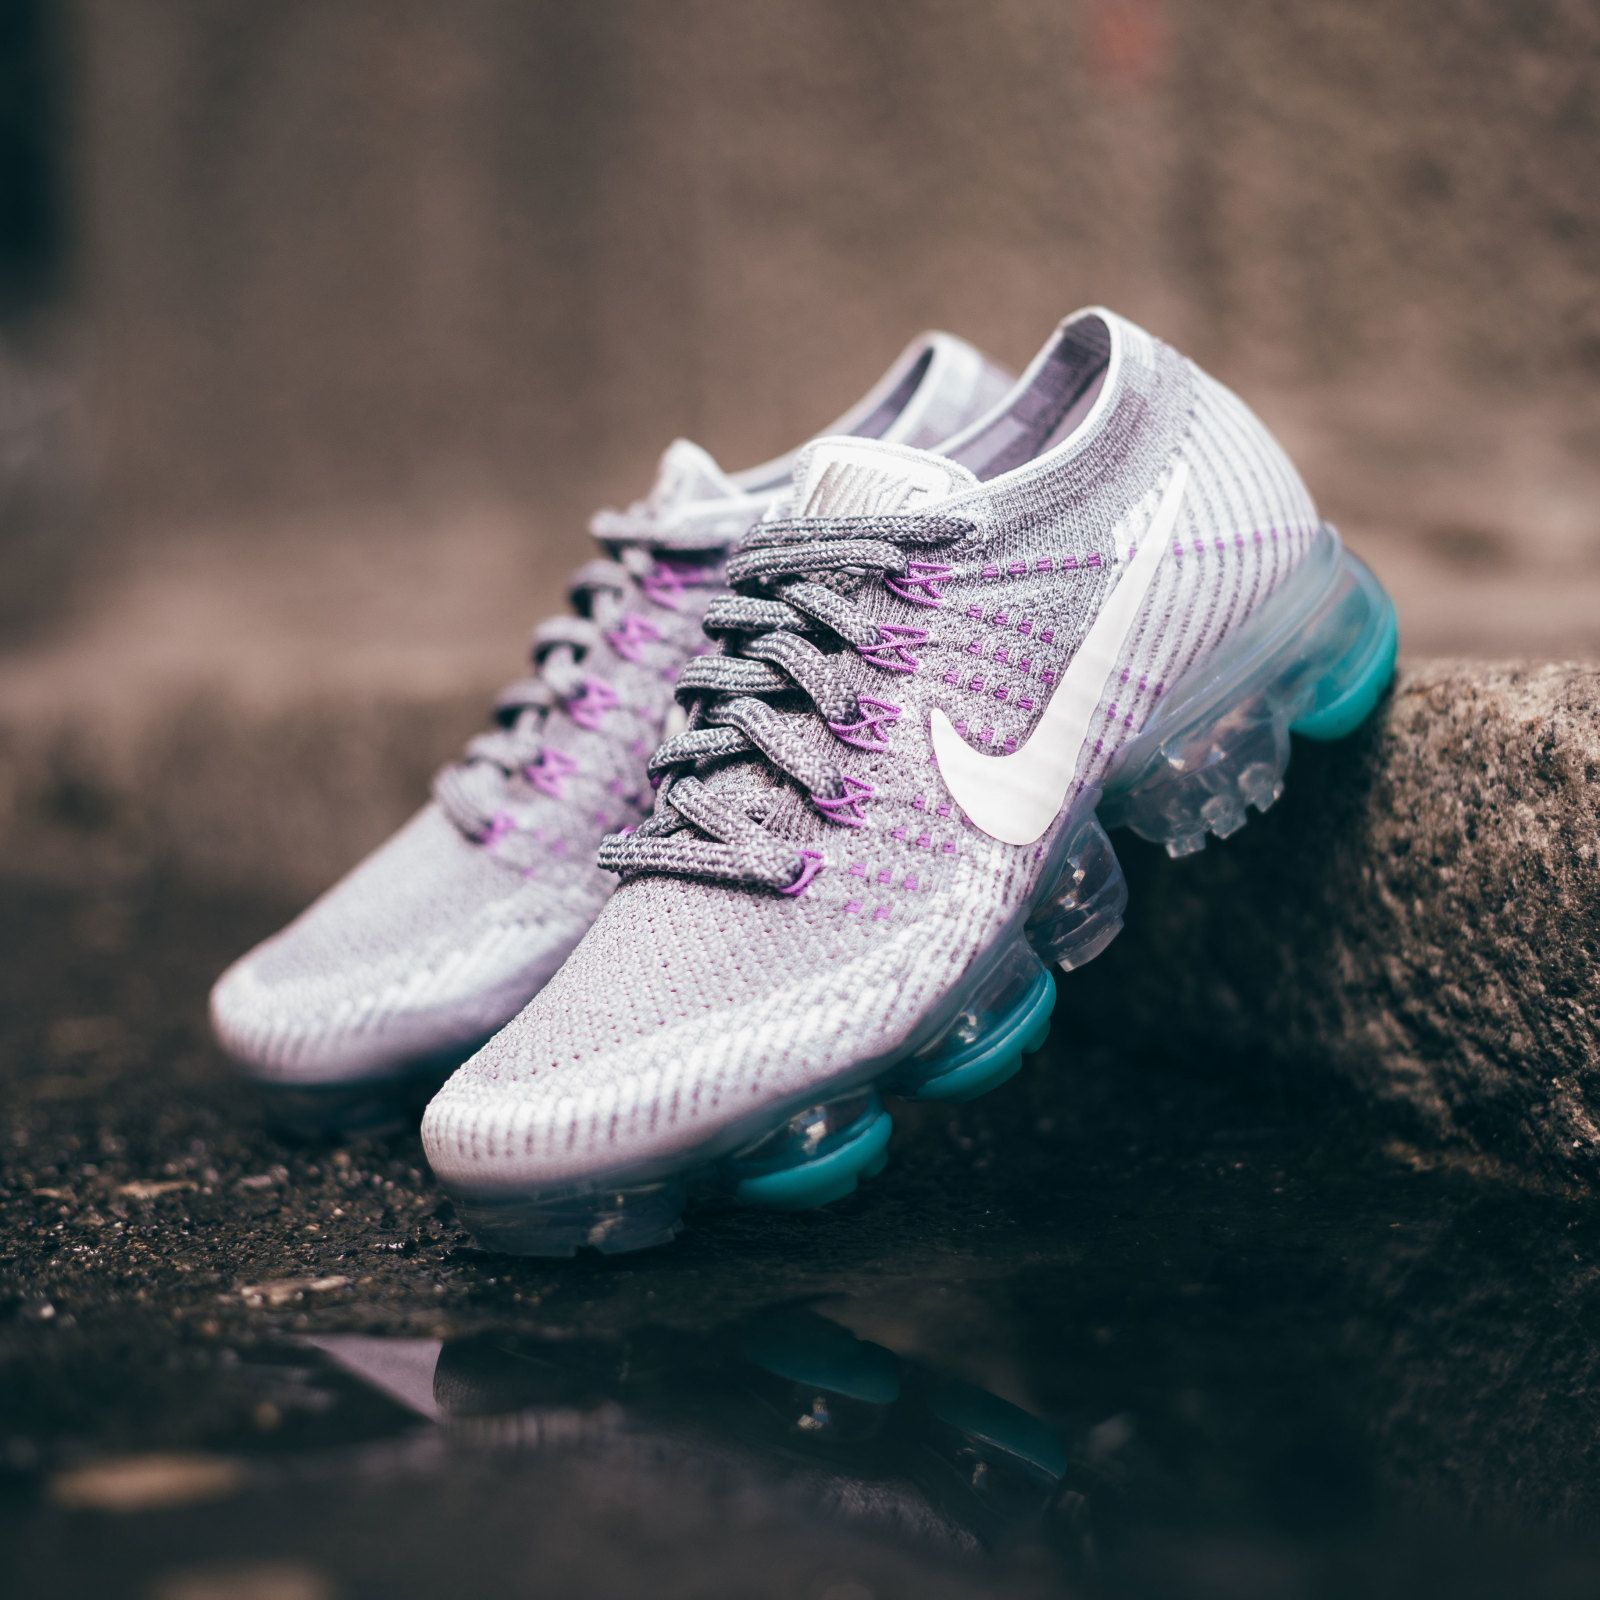 buy online 5fb2e eaa1c Nike Air Vapormax Grape Heritage Pack in 2019 | Sneakers I ...